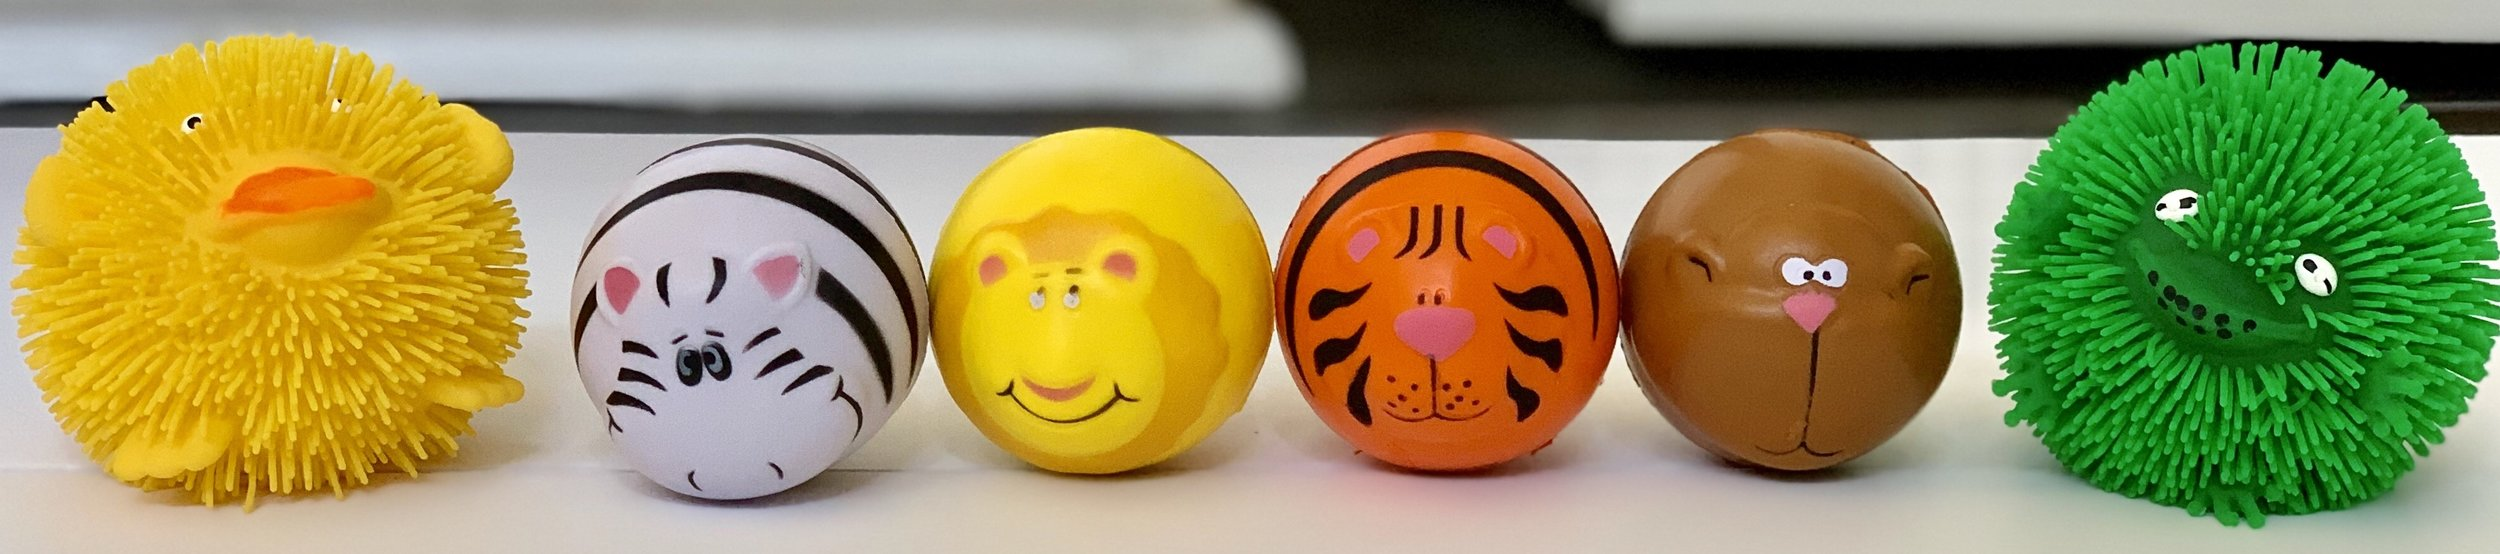 Stress balls - purchased on  Amazon  and at  Lakeshore Learning